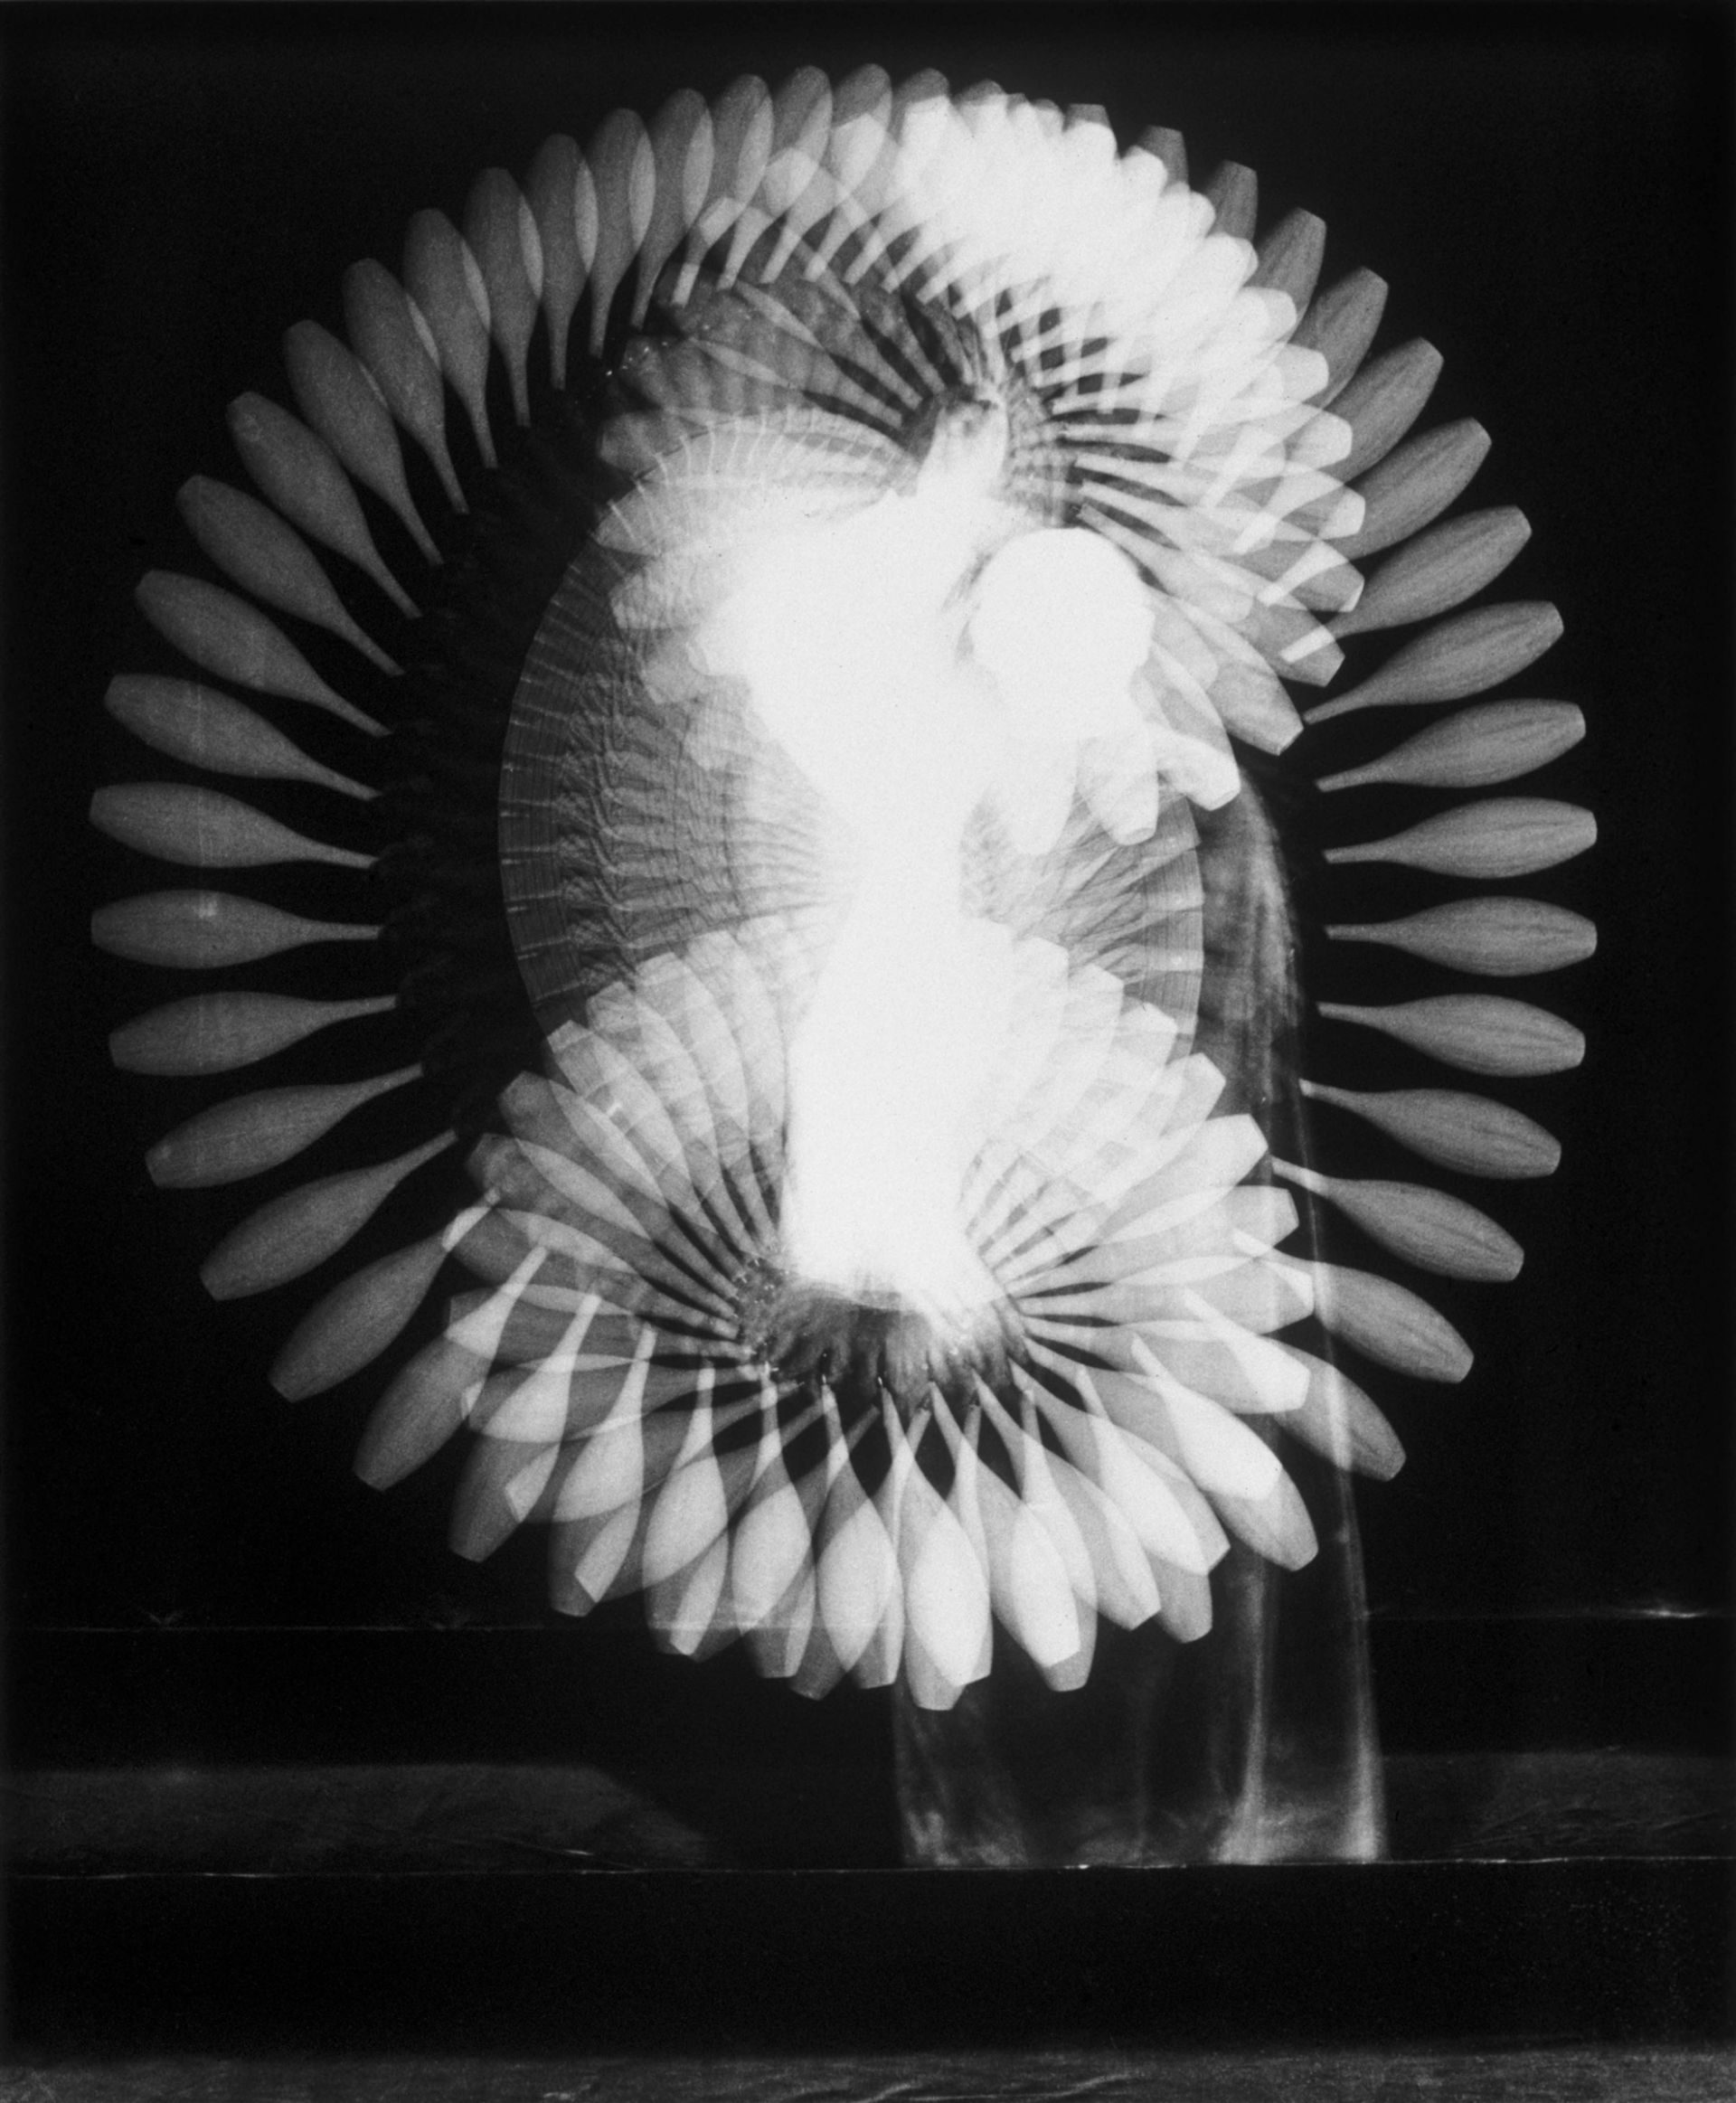 <i>Indian Club Demonstration, Multiflash,</i> 1939<br> gelatin silver print<br> 16 x 19 inches<br> Edgerton's high-speed light, flashing 100 times per second, sharply delineates each moment of the sequence. The great Bauhaus artist László Moholy-Nagy was so intrigued by this example of the new vision that he traded prints with Edgerton at a Chicago lecture in 1939.